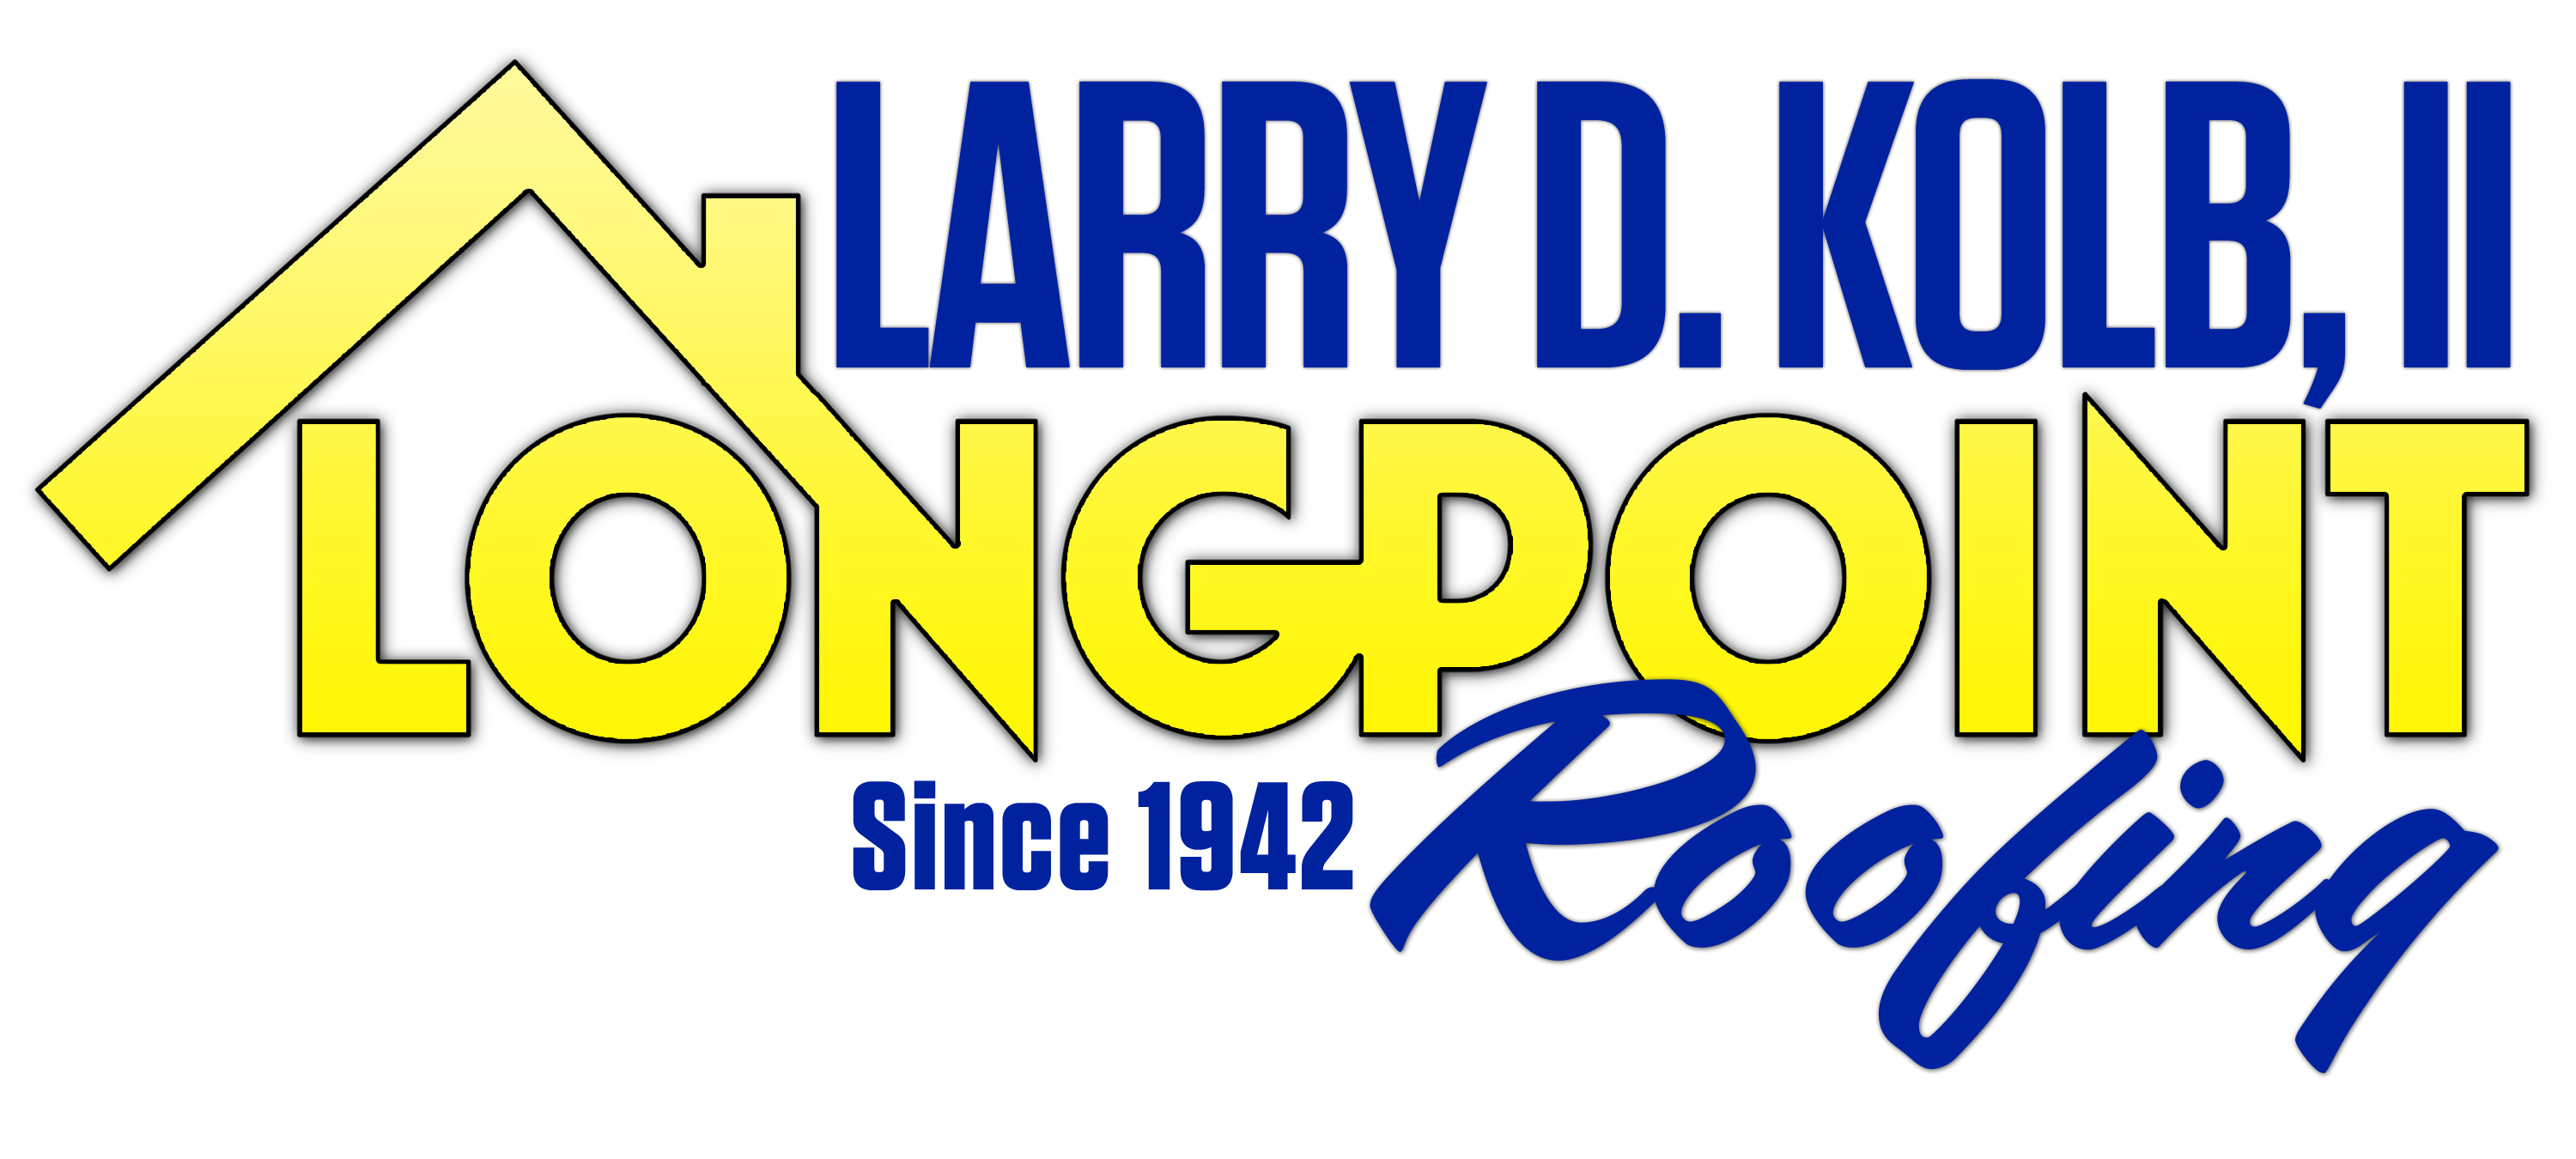 Long Point Roofing - Larry D. Kolb, II